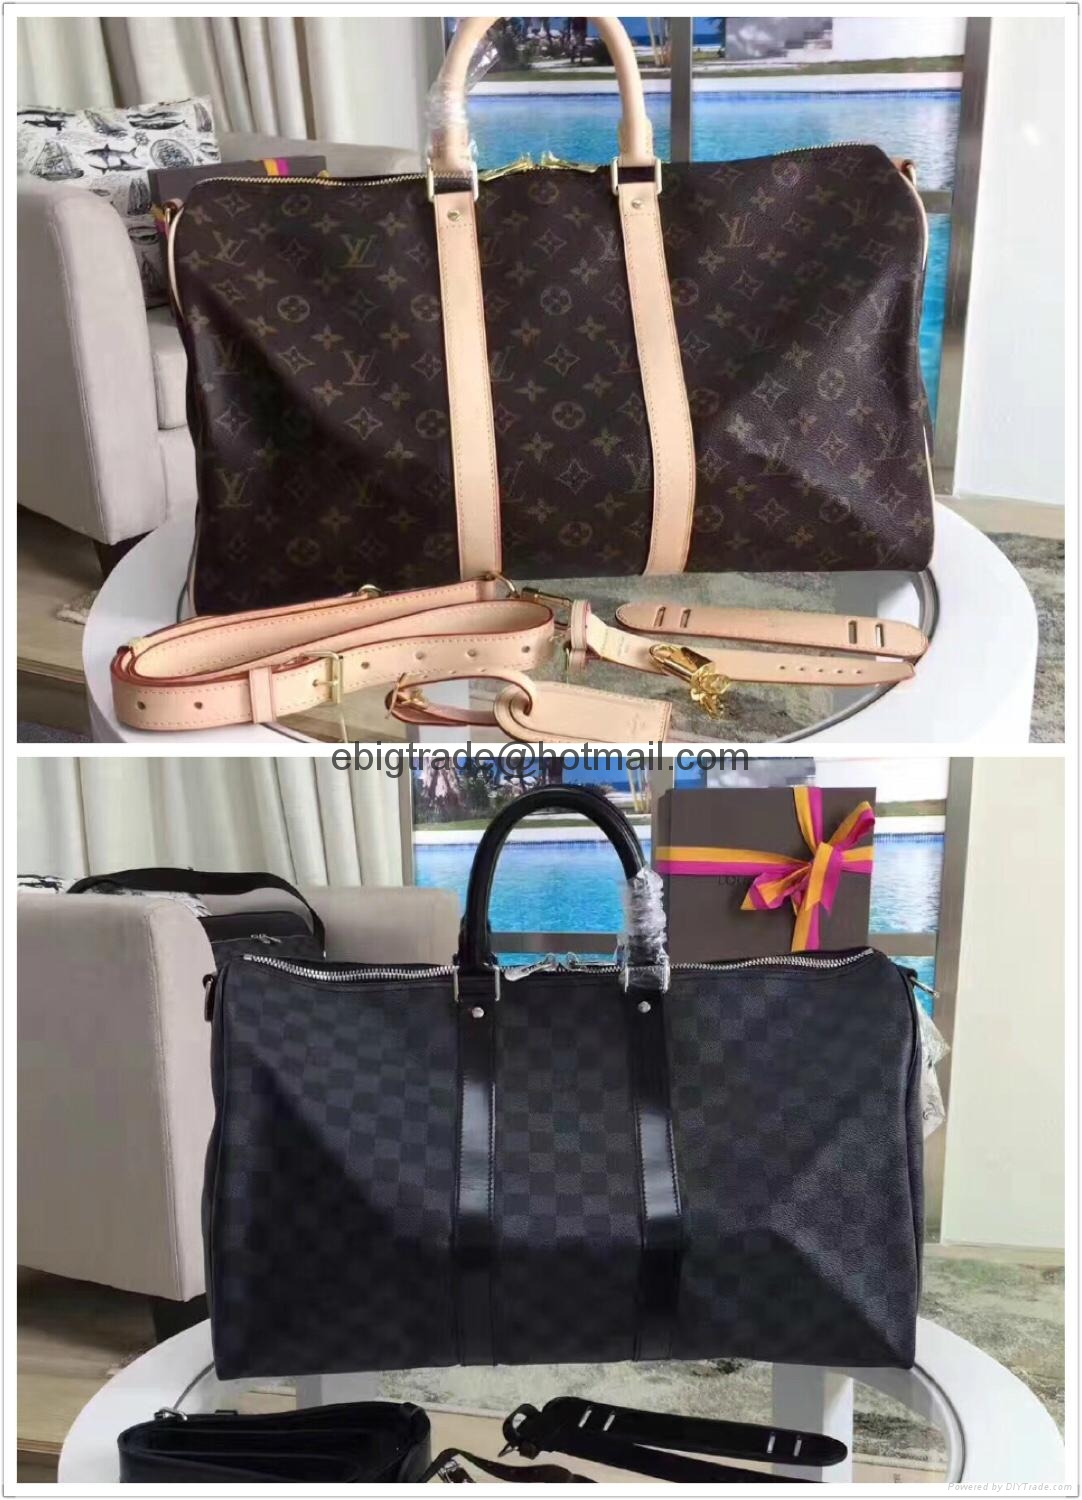 Cheap LV Neverful Bags LOUIS VUITTON HANDBAGS LV BAGS LV handbags for Sale 20